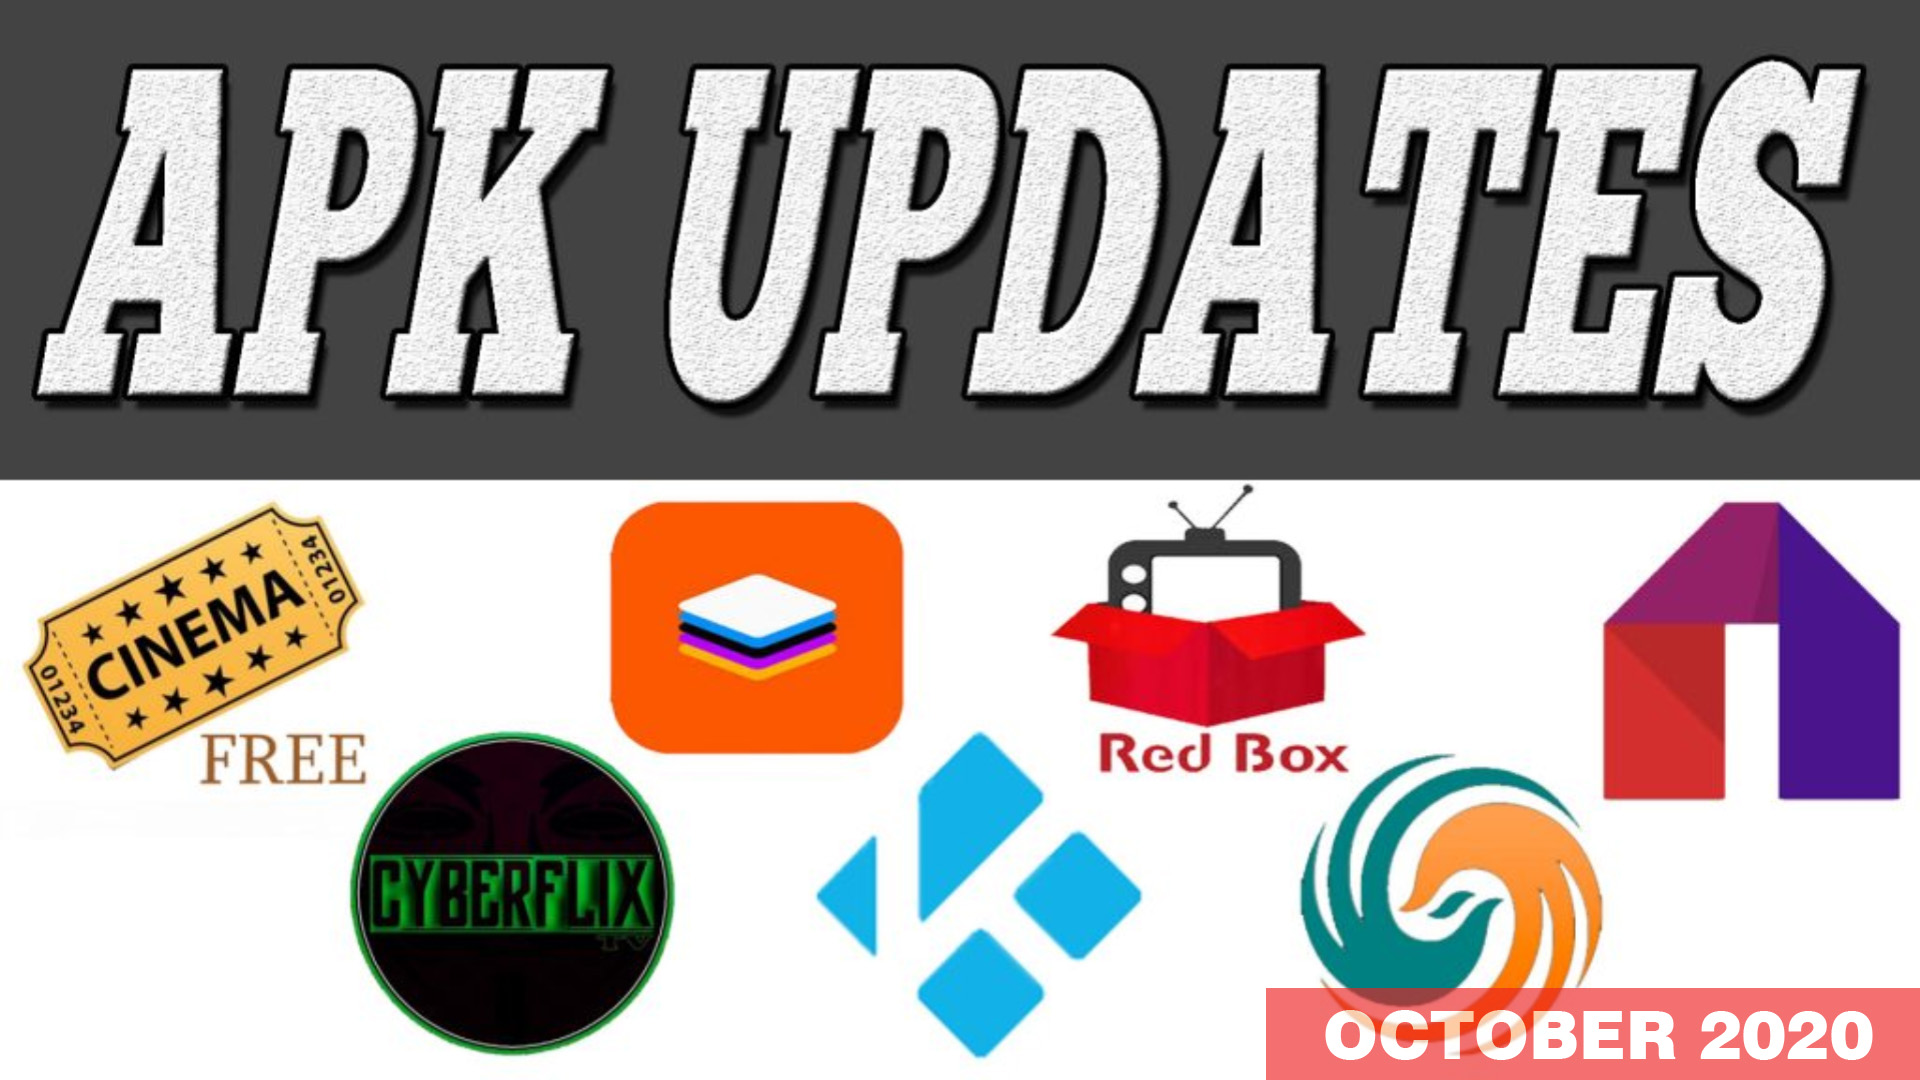 APK UPDATES OCTOBER 2020